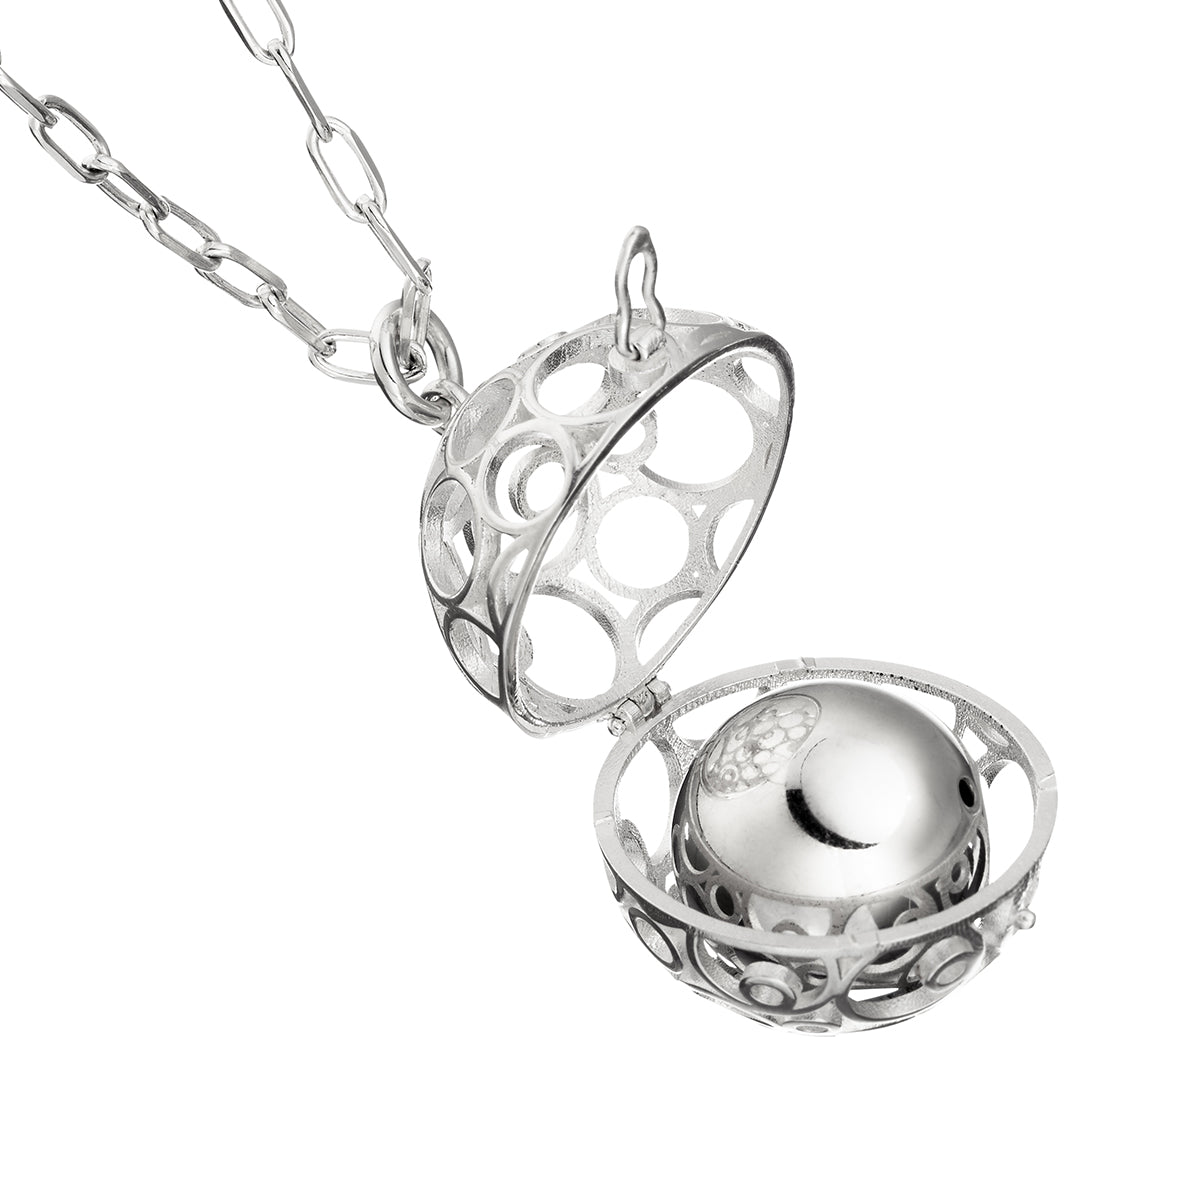 Aisti Bubbles necklace